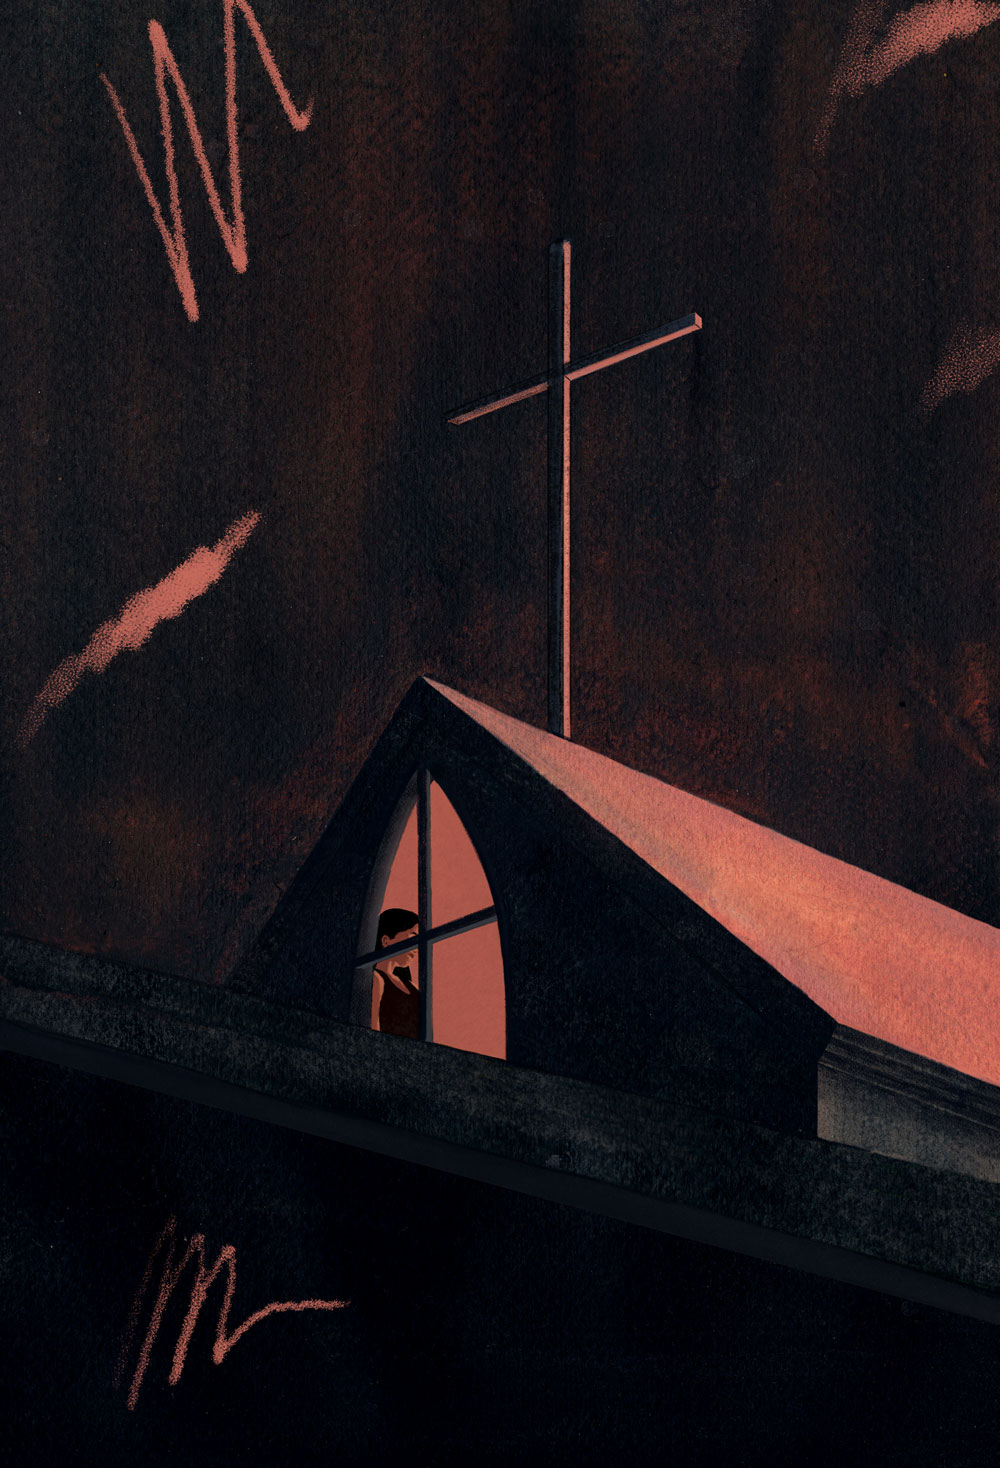 A woman is seen in the attic window of a Christian church, the cross standing menacingly above her.